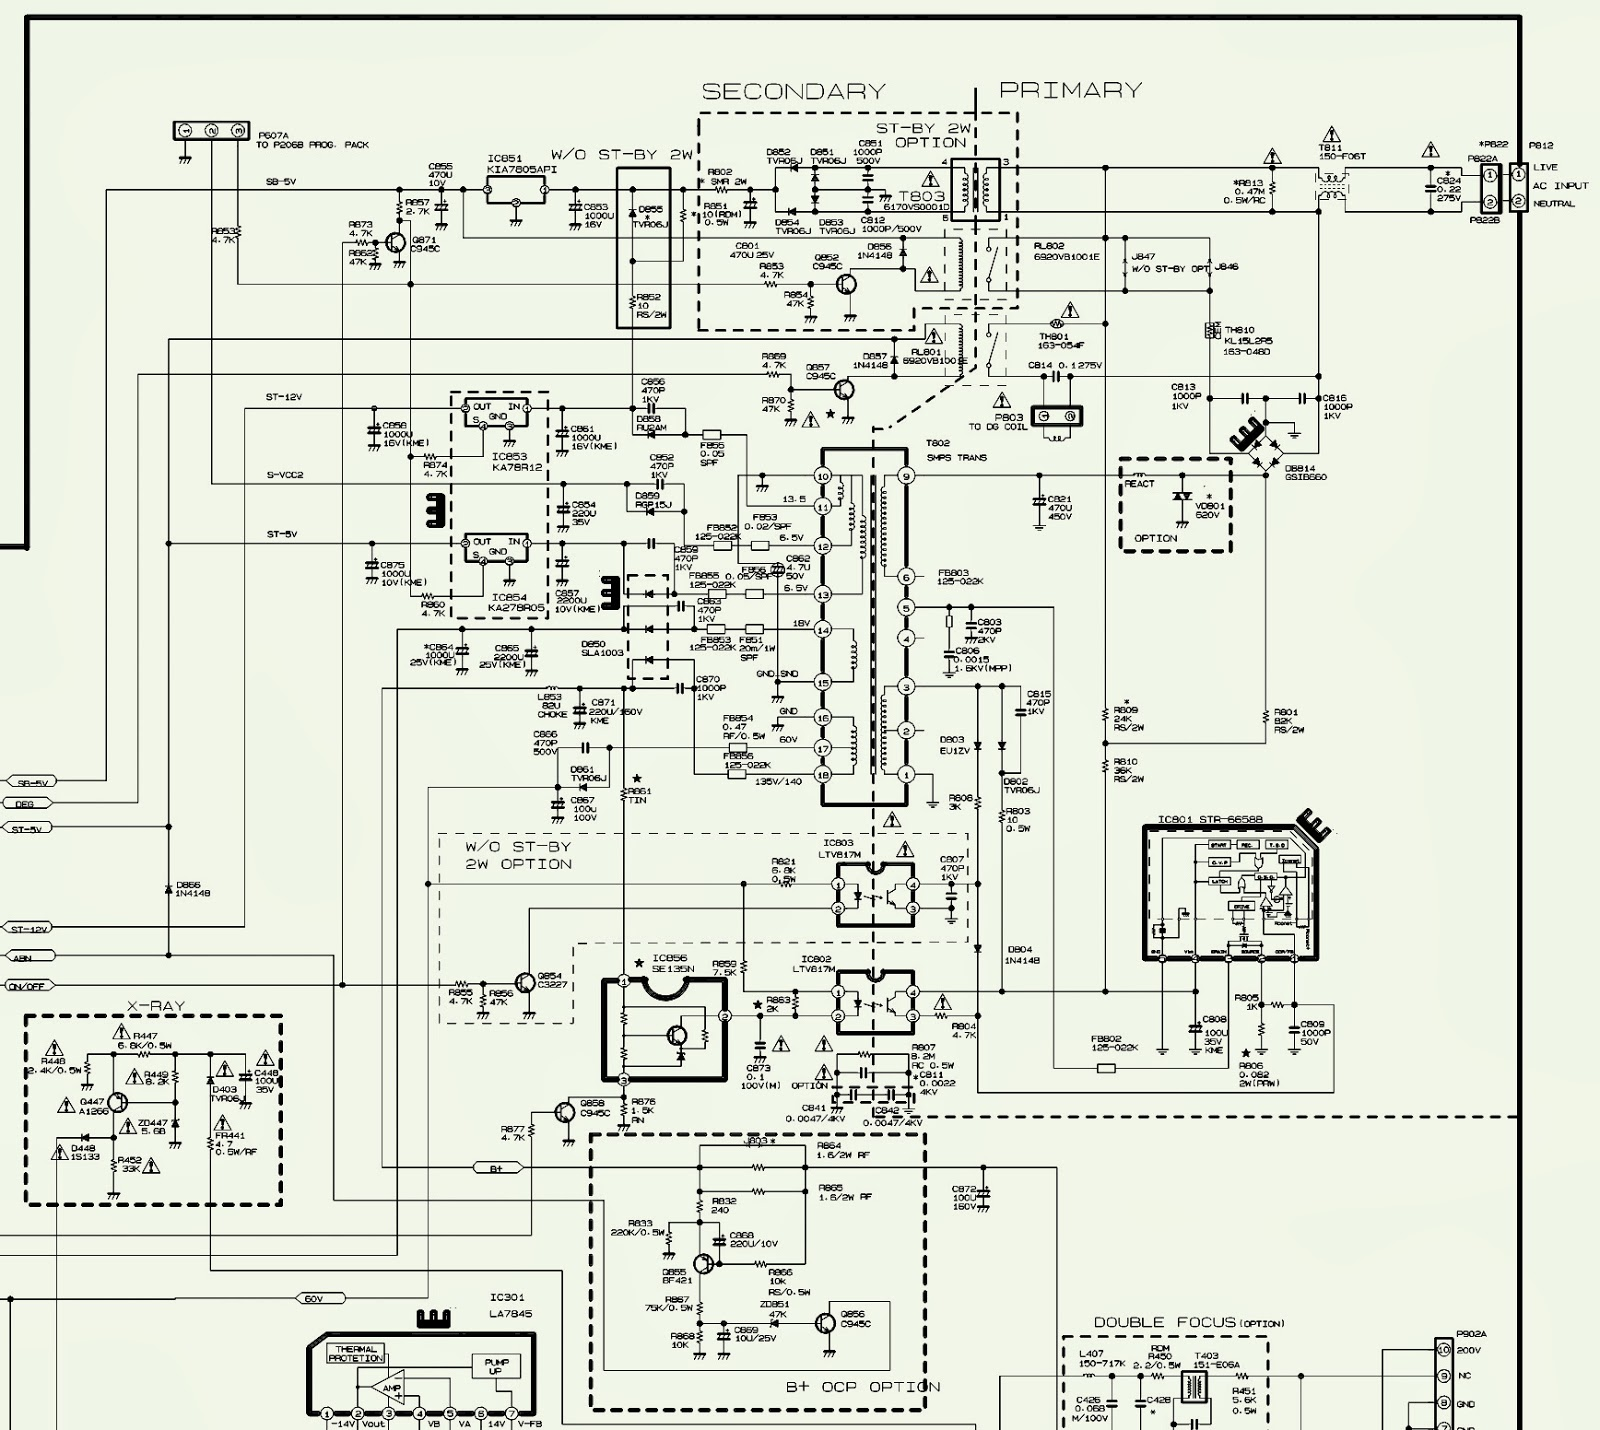 wiring diagram lg tv wiring diagram blogs lg tv lm6700 wiring diagram [ 1600 x 1430 Pixel ]